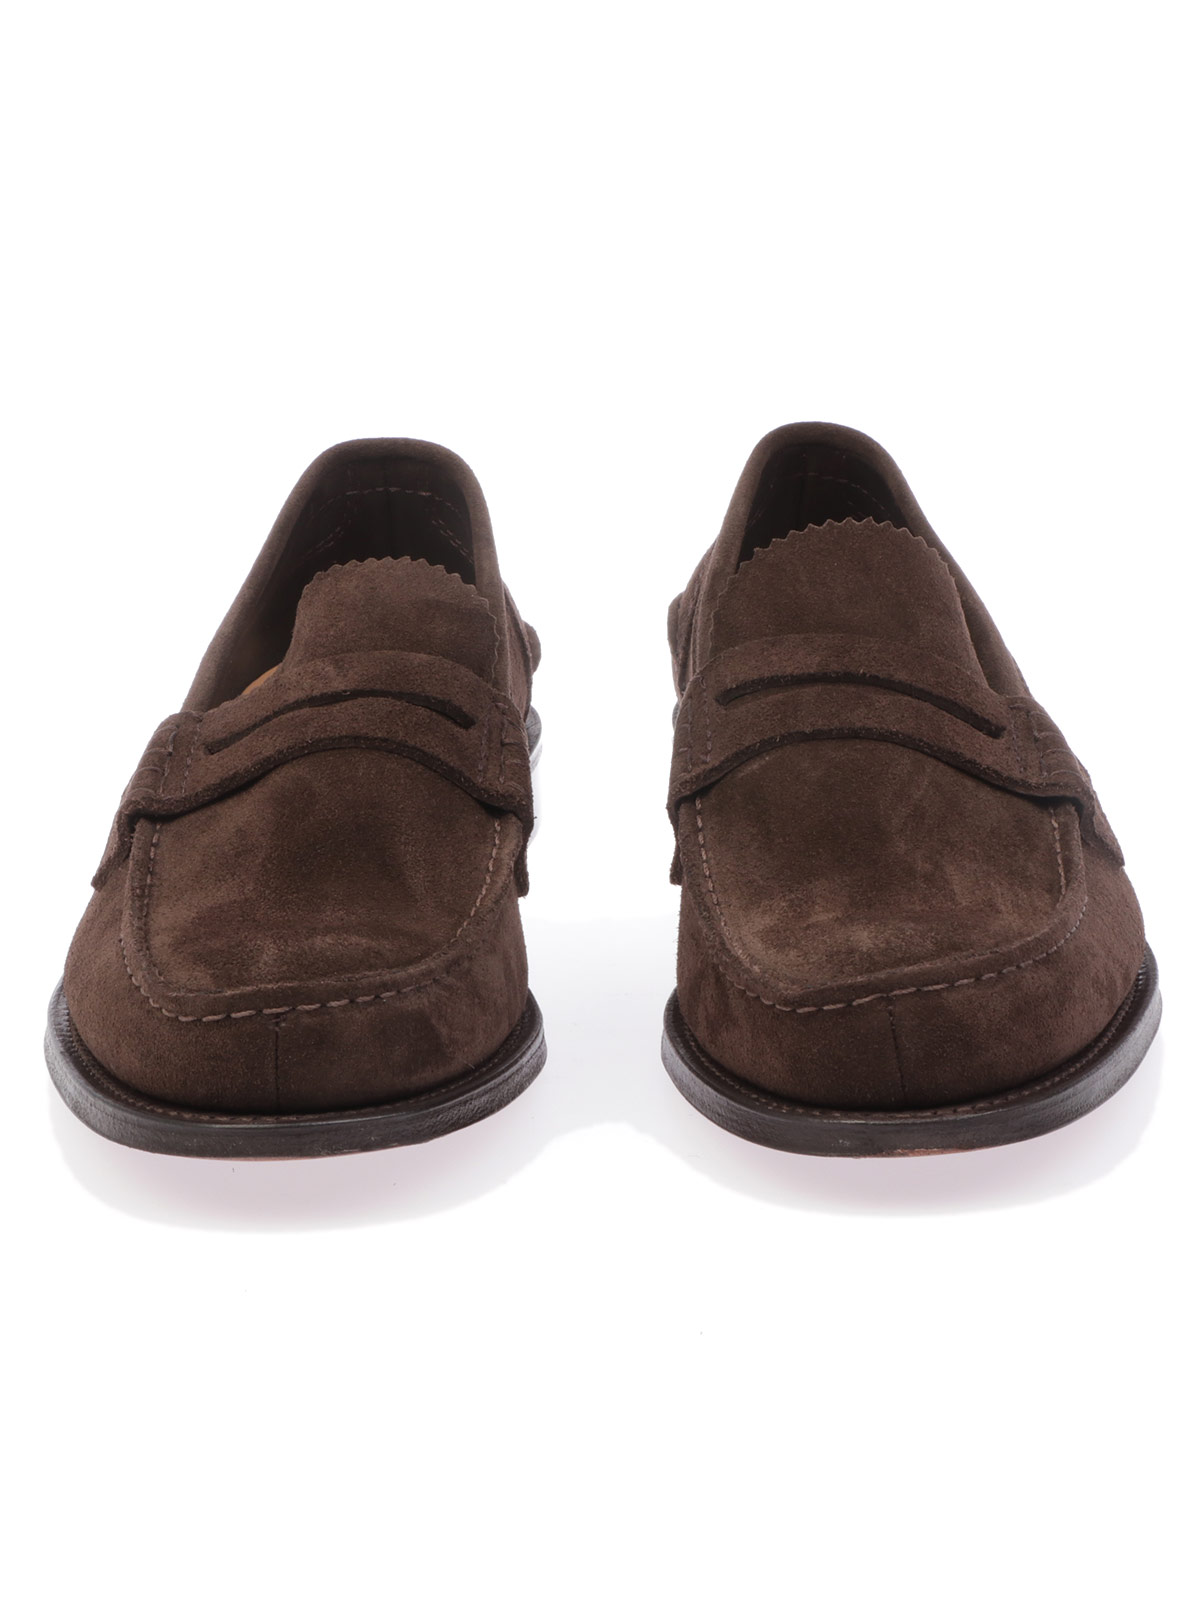 Picture of CHURCH'S | Men's Pembrey Castoro Loafer